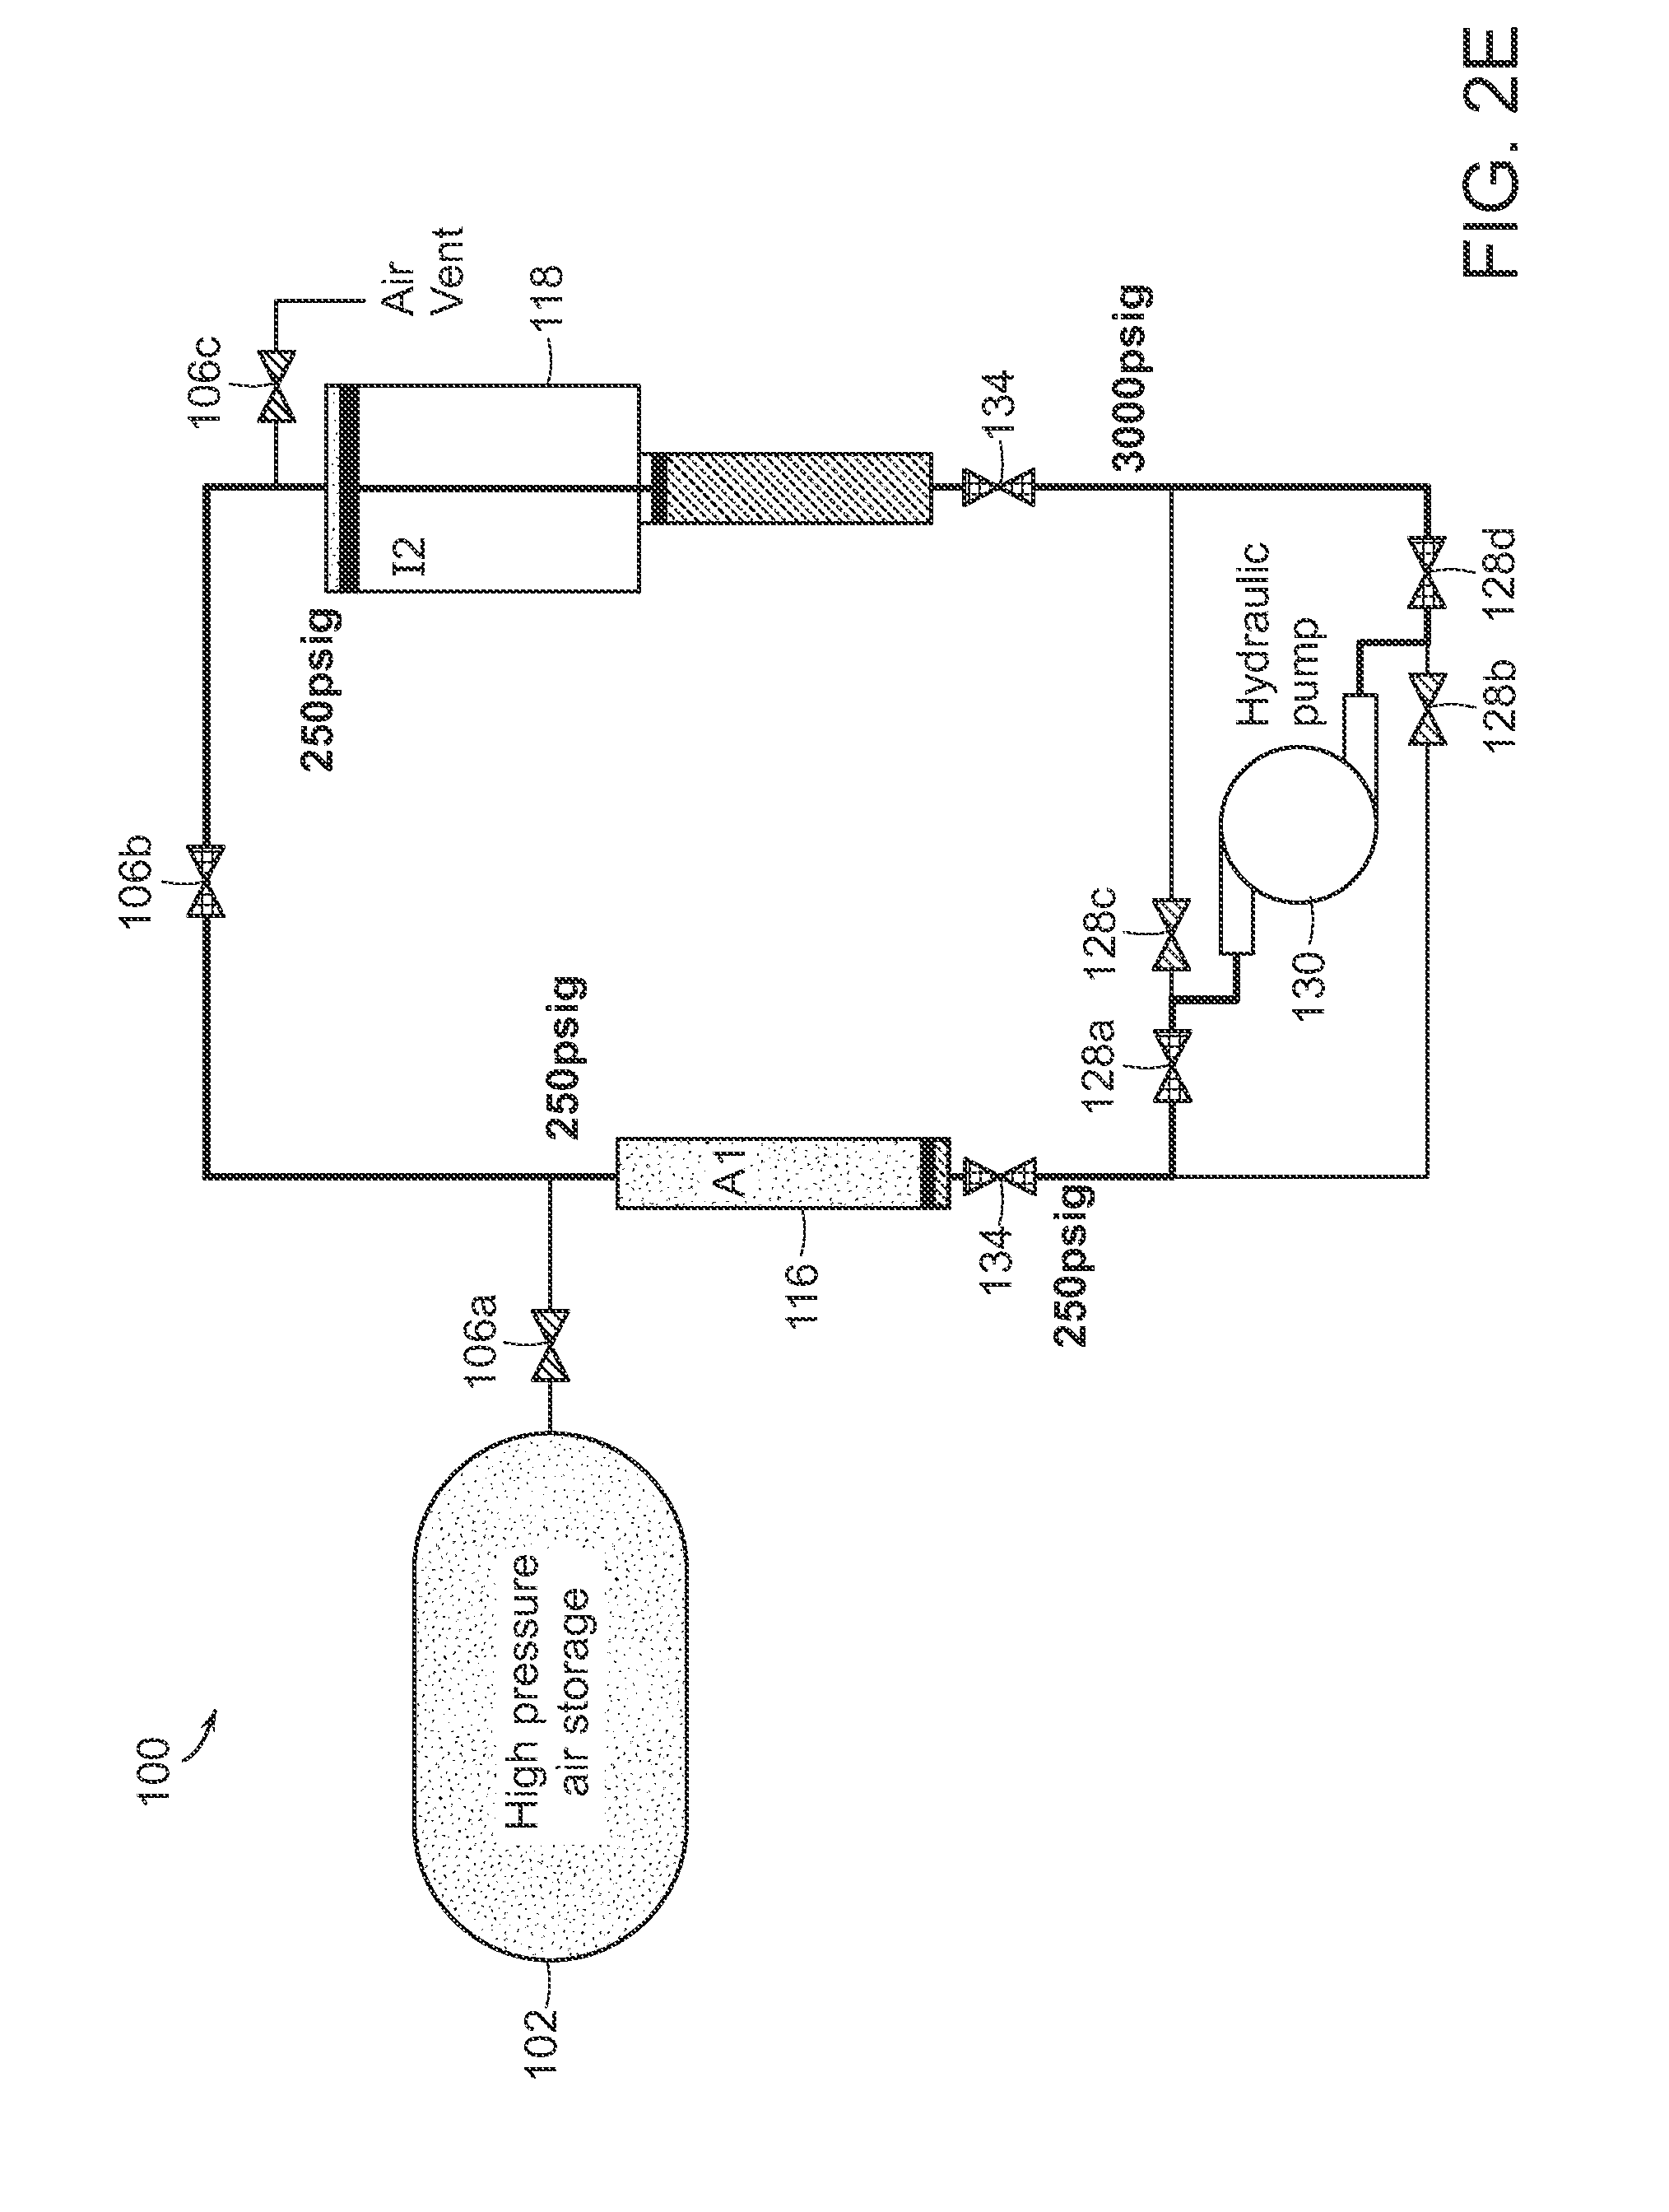 Patente Us8713929 Systems And Methods For Energy Storage Variable Resistor Circuit Diagram Physicslab January 2007 Part 1 Patent Drawing